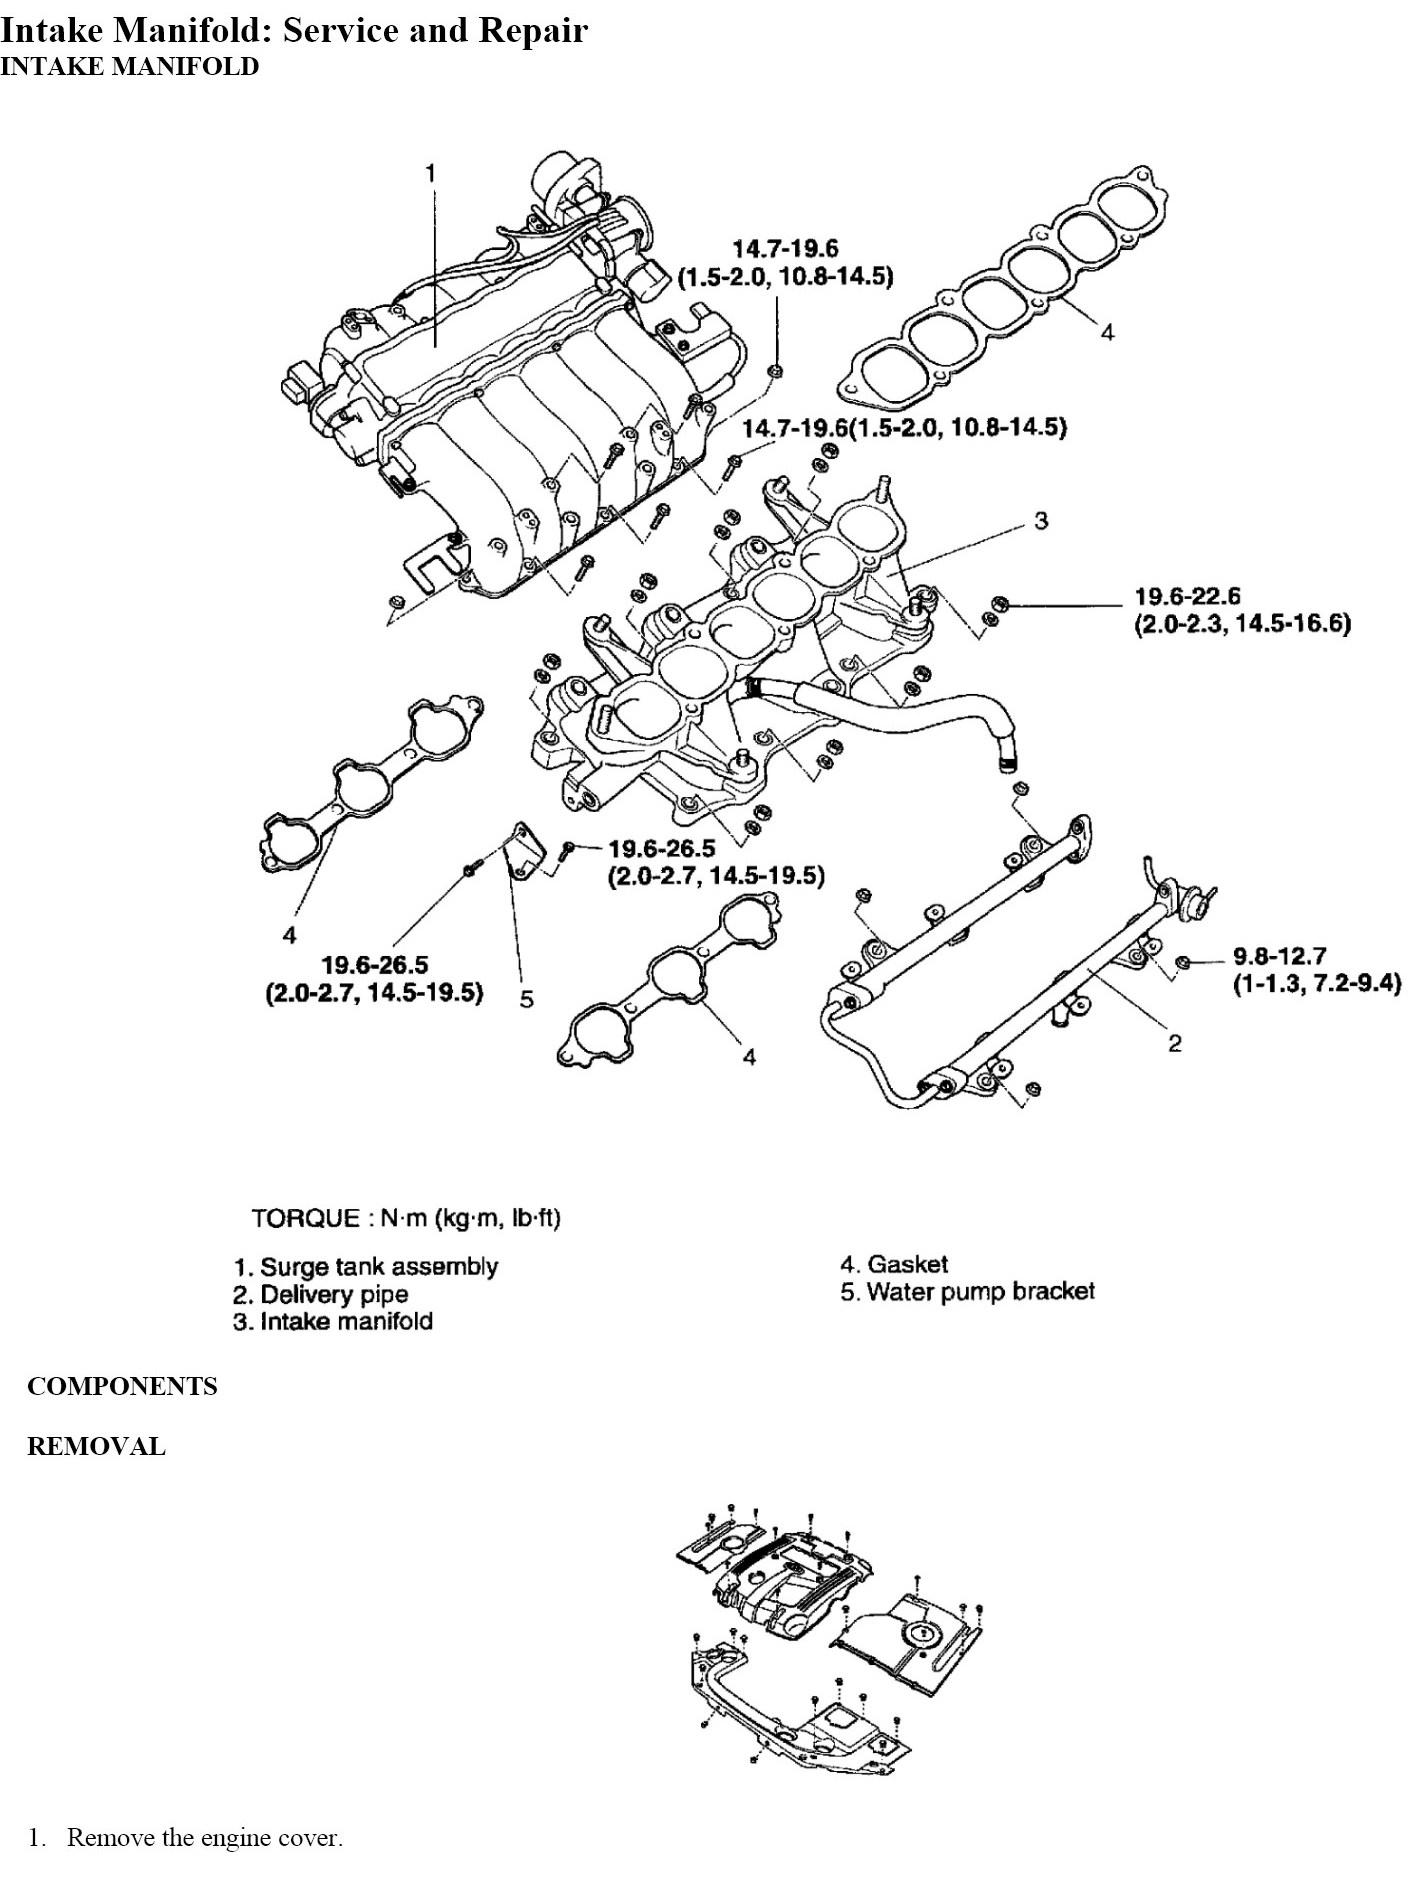 How Do You Change The Spark Plugs In The 2006 Kia Amanti  V6  350 Where Are The Spark Plugs